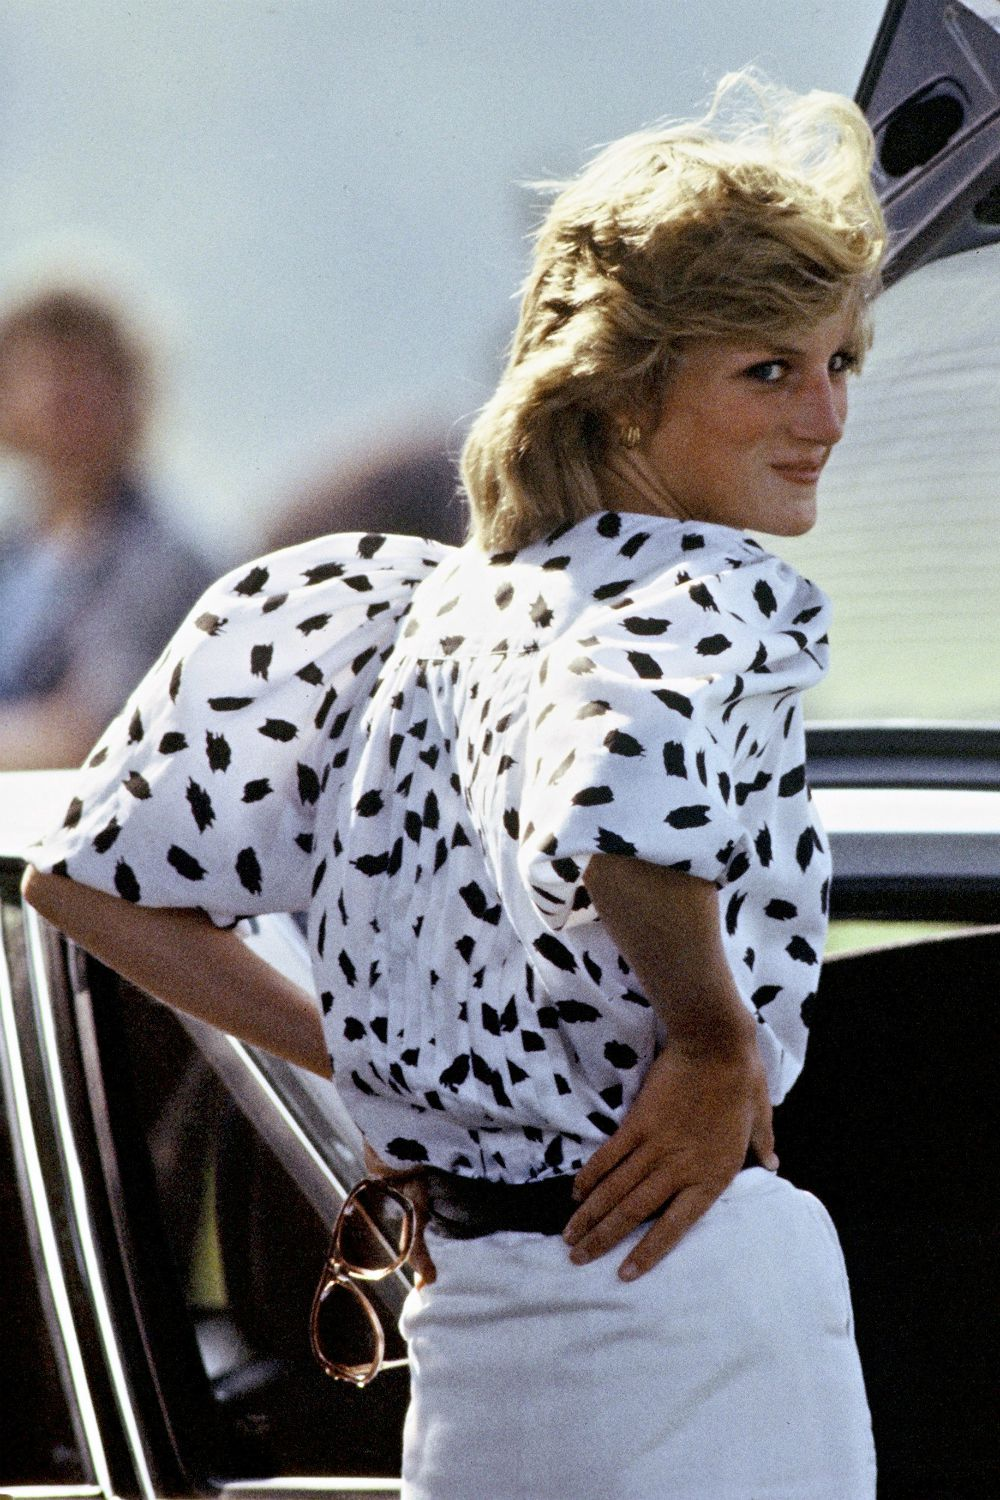 Princess Diana looking over her shoulder in close-up